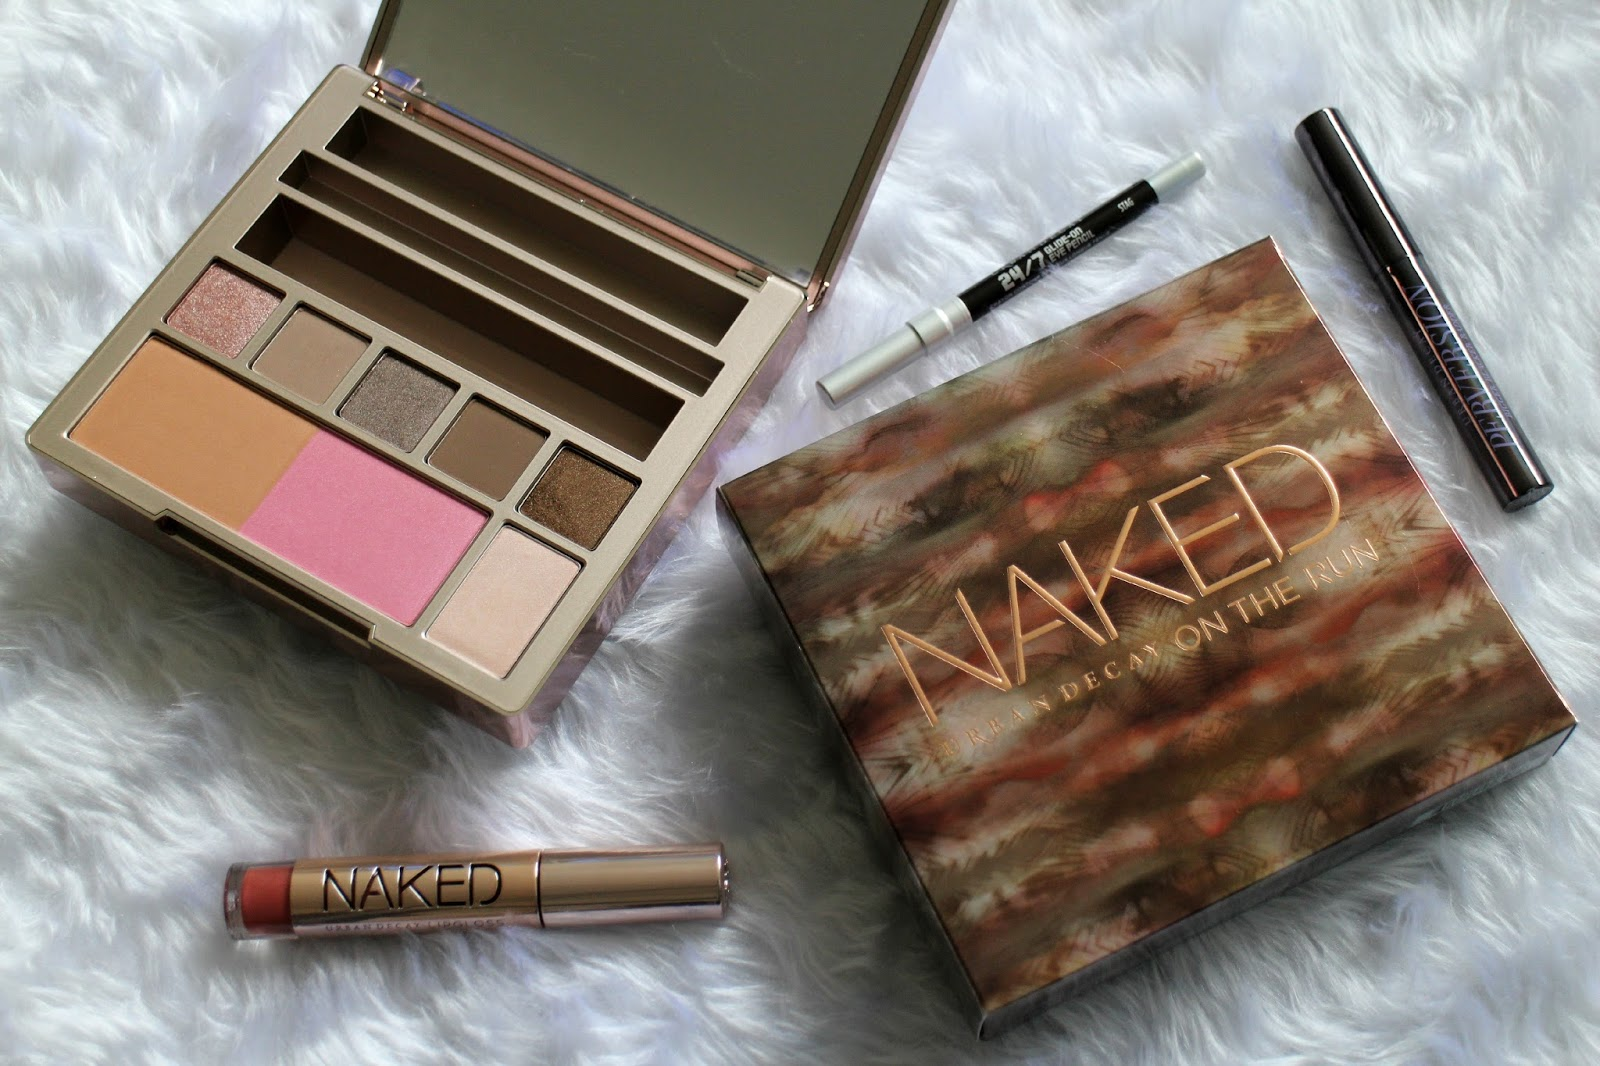 Naked On The Run Palette Review